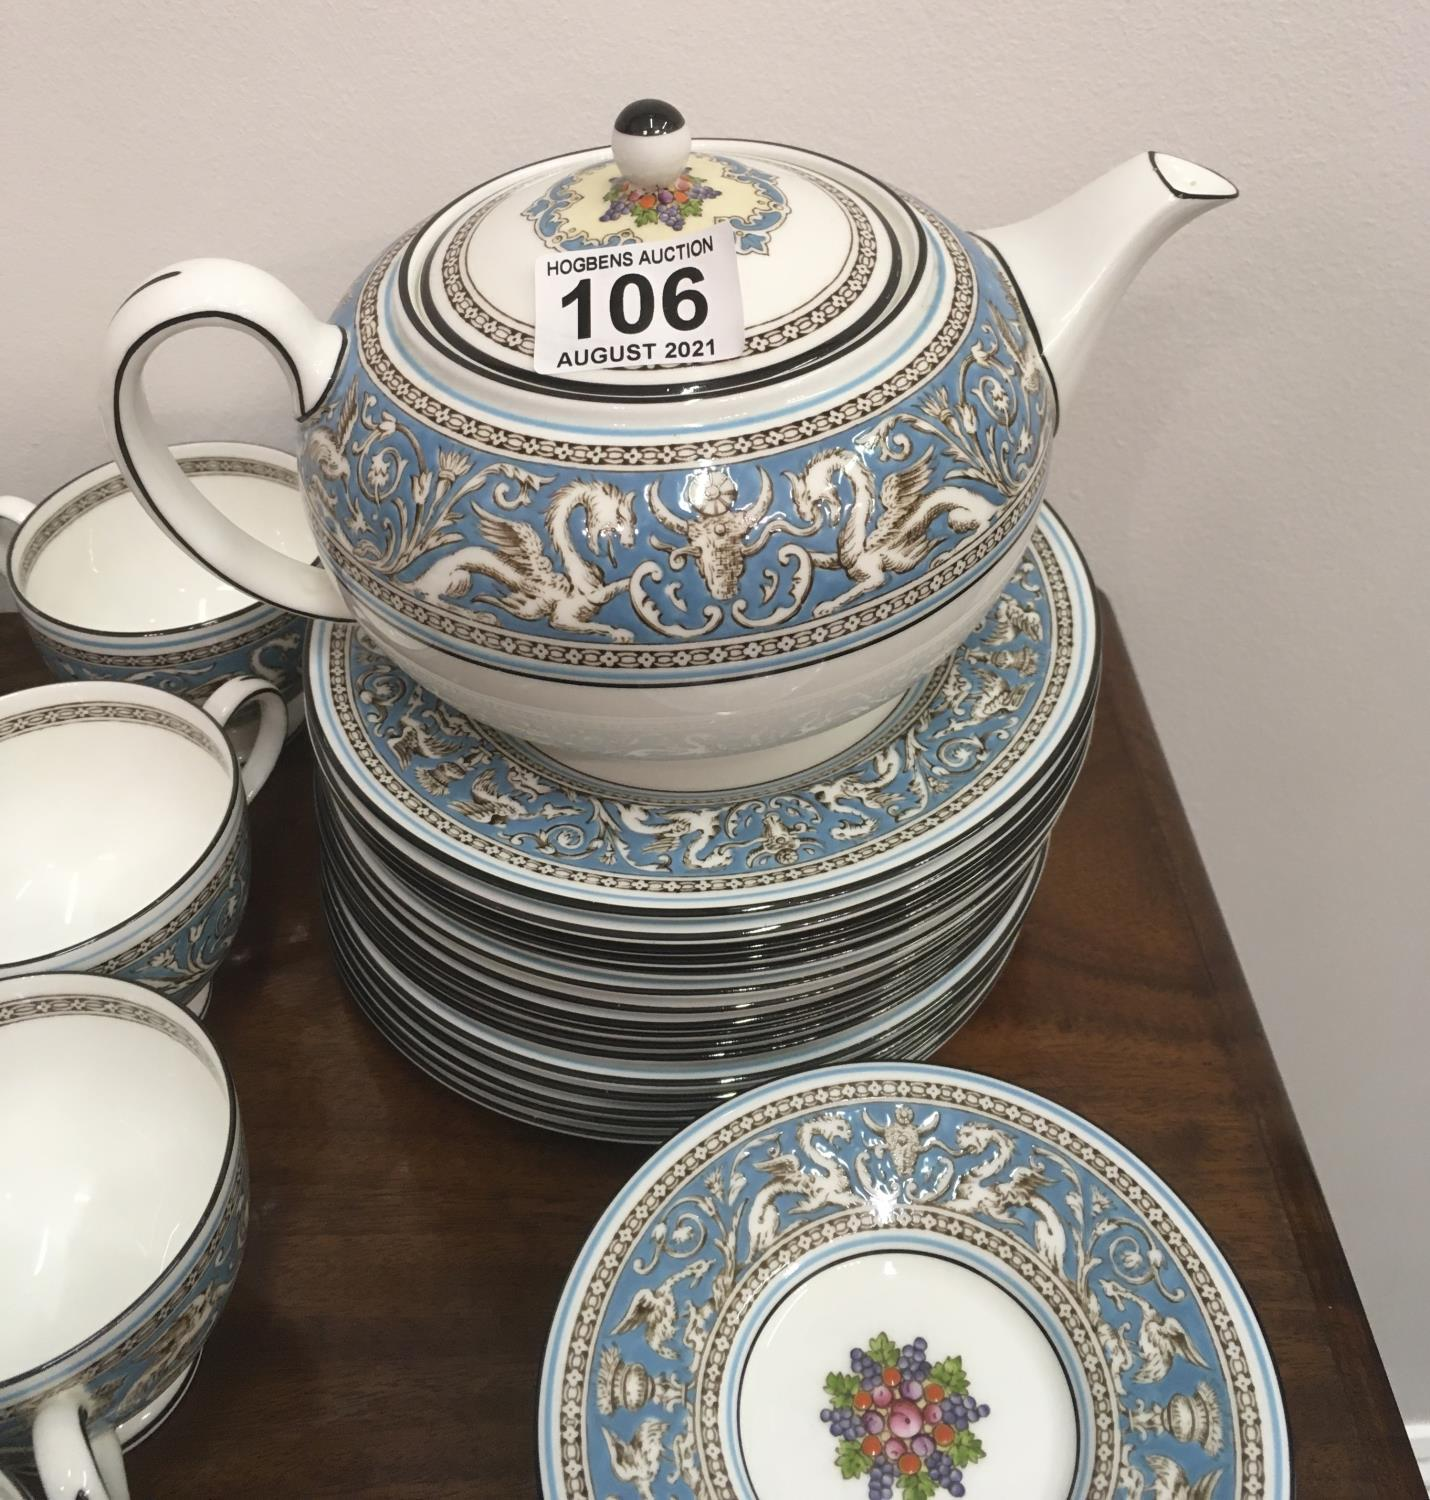 Wedgwood Classical Tea and Coffee set 8 place setting includes, coffee pot, tea pot, cream and - Image 6 of 7